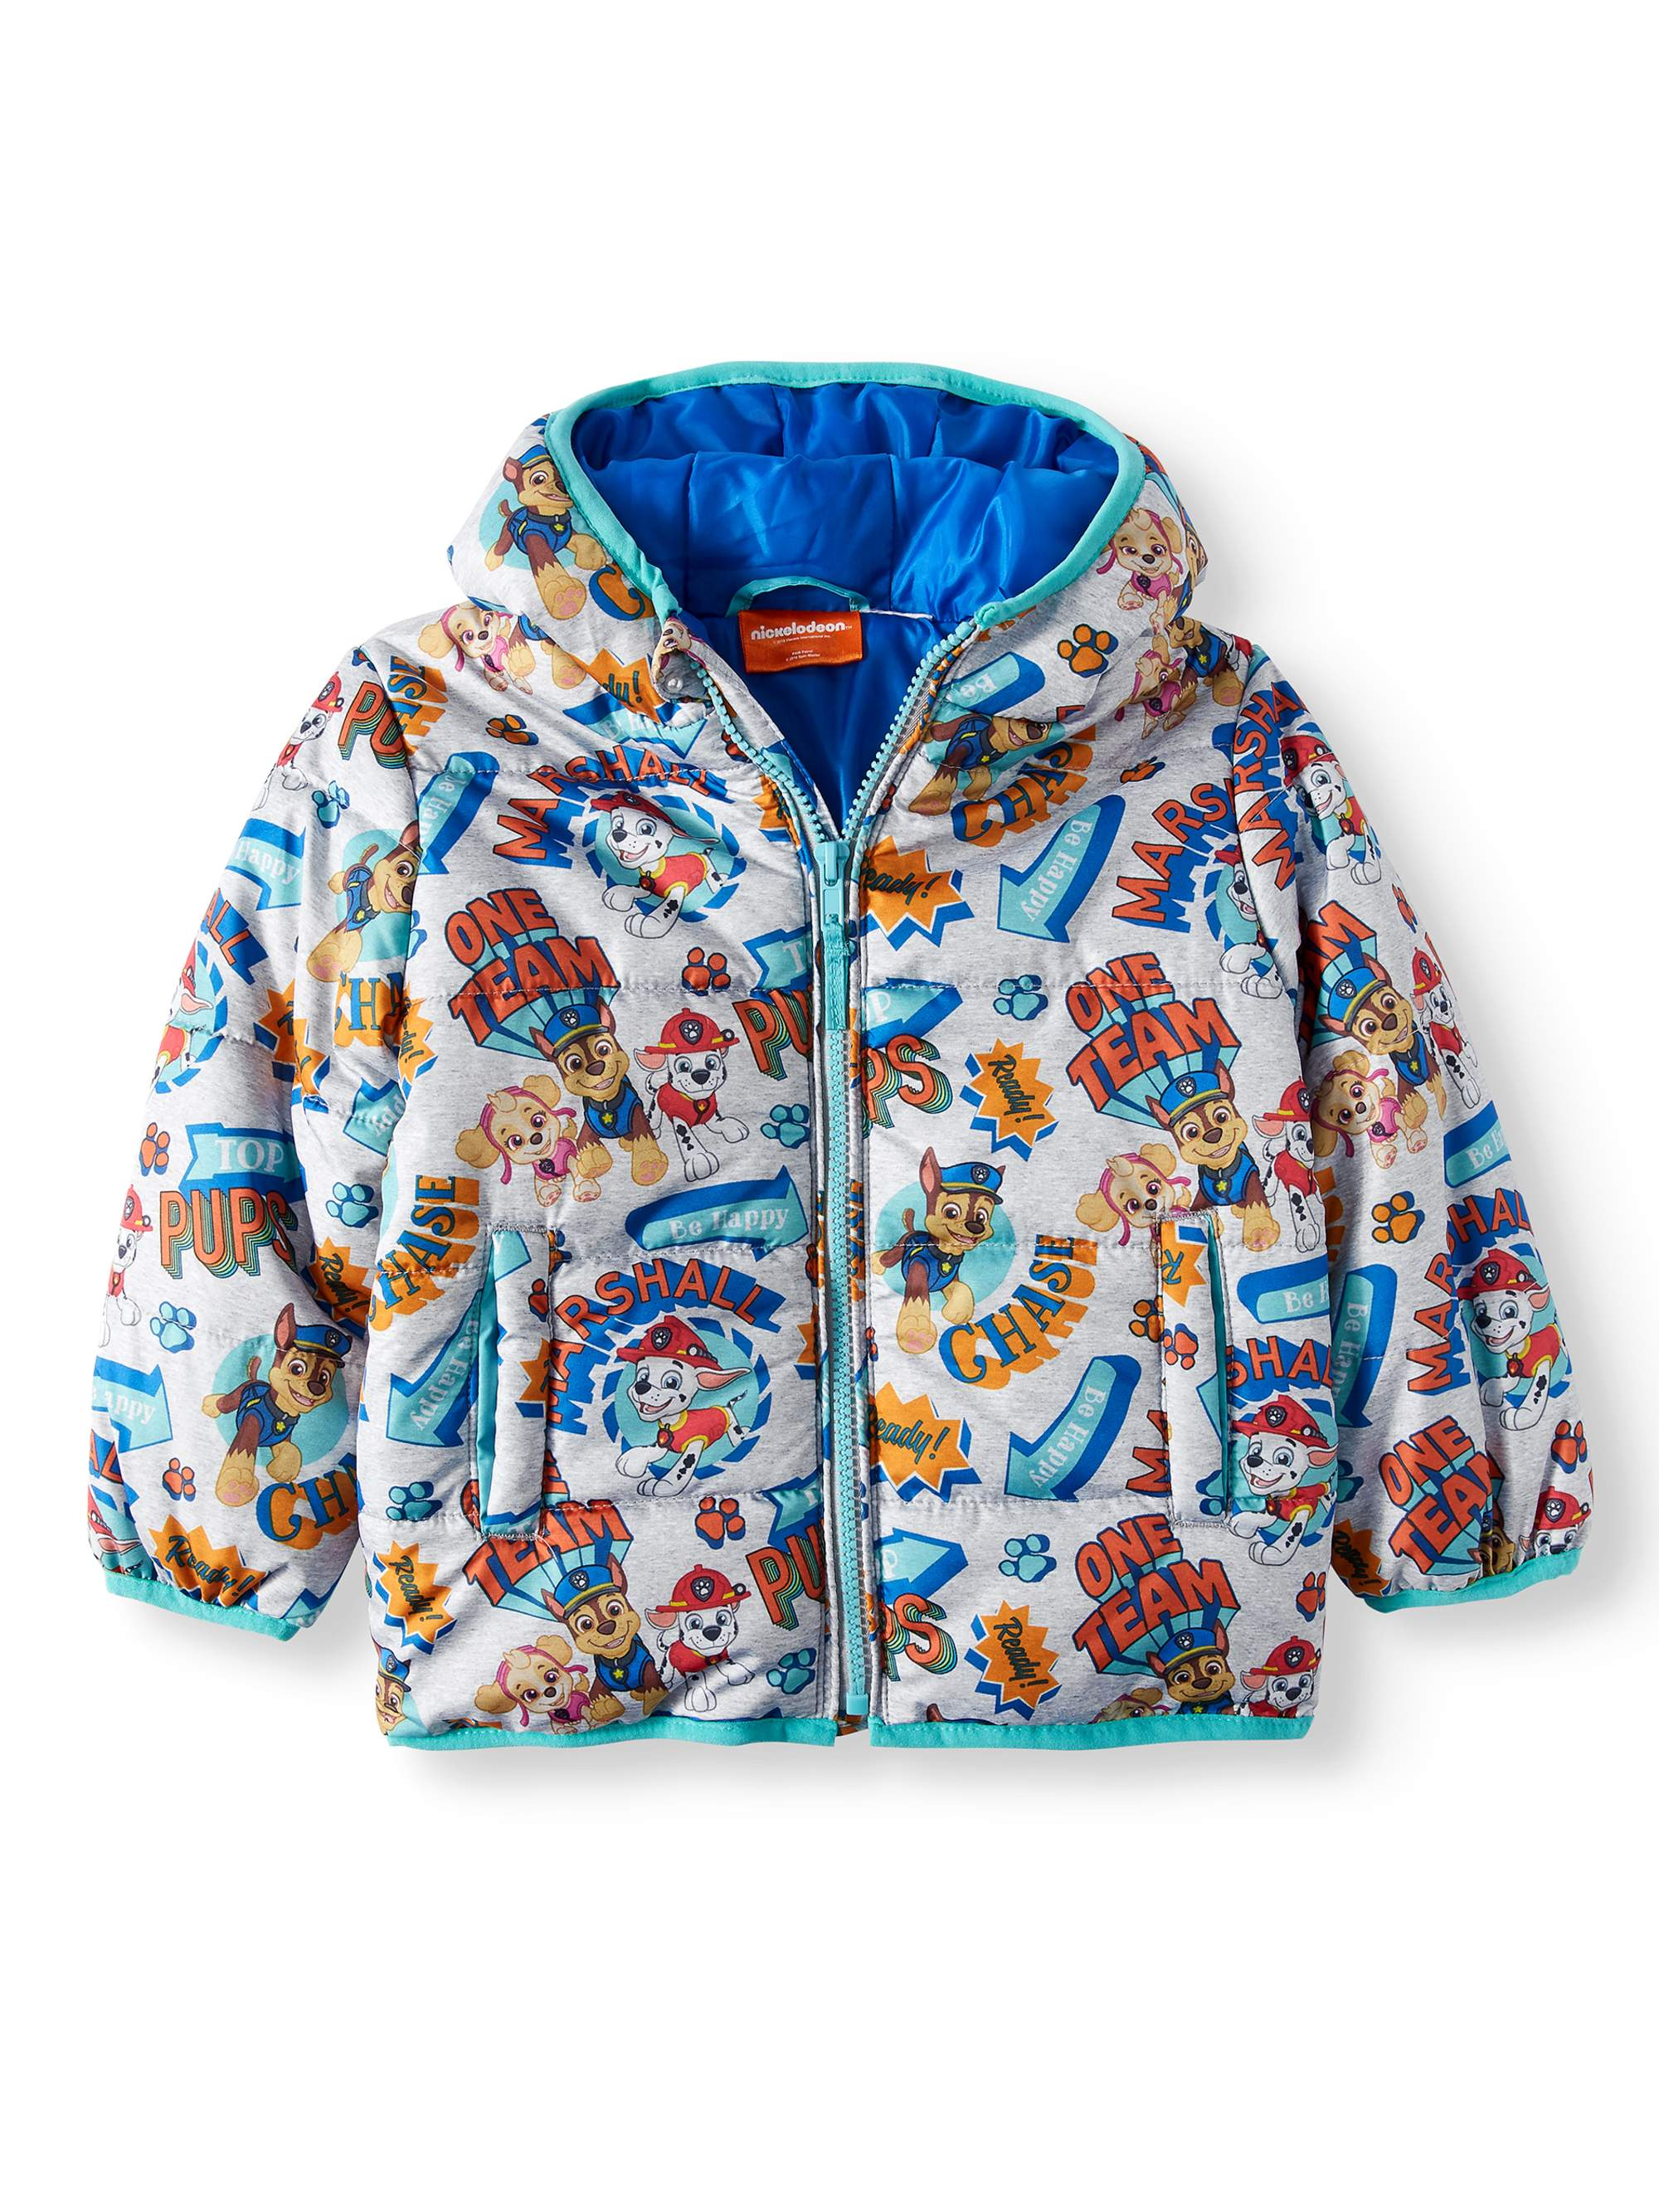 All-Over Print Hooded Puffer Jacket Coat (Toddler Boys)